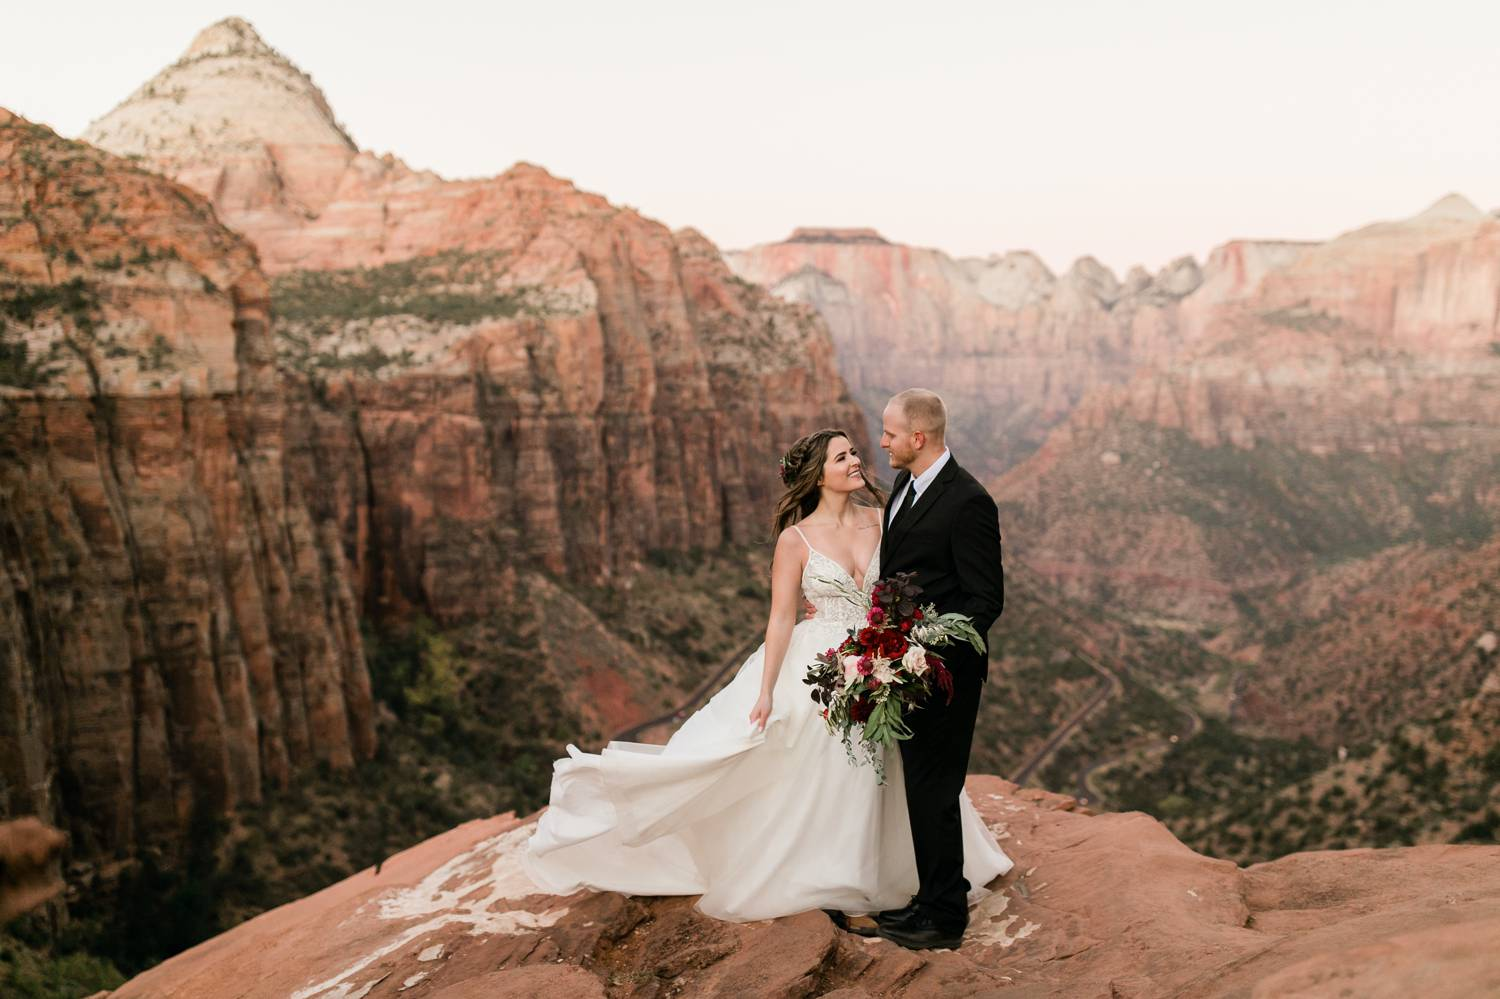 A bride and groom gaze into one another's eyes as they stand at the edge of a red rock cliff overlooking a tremendous canyon